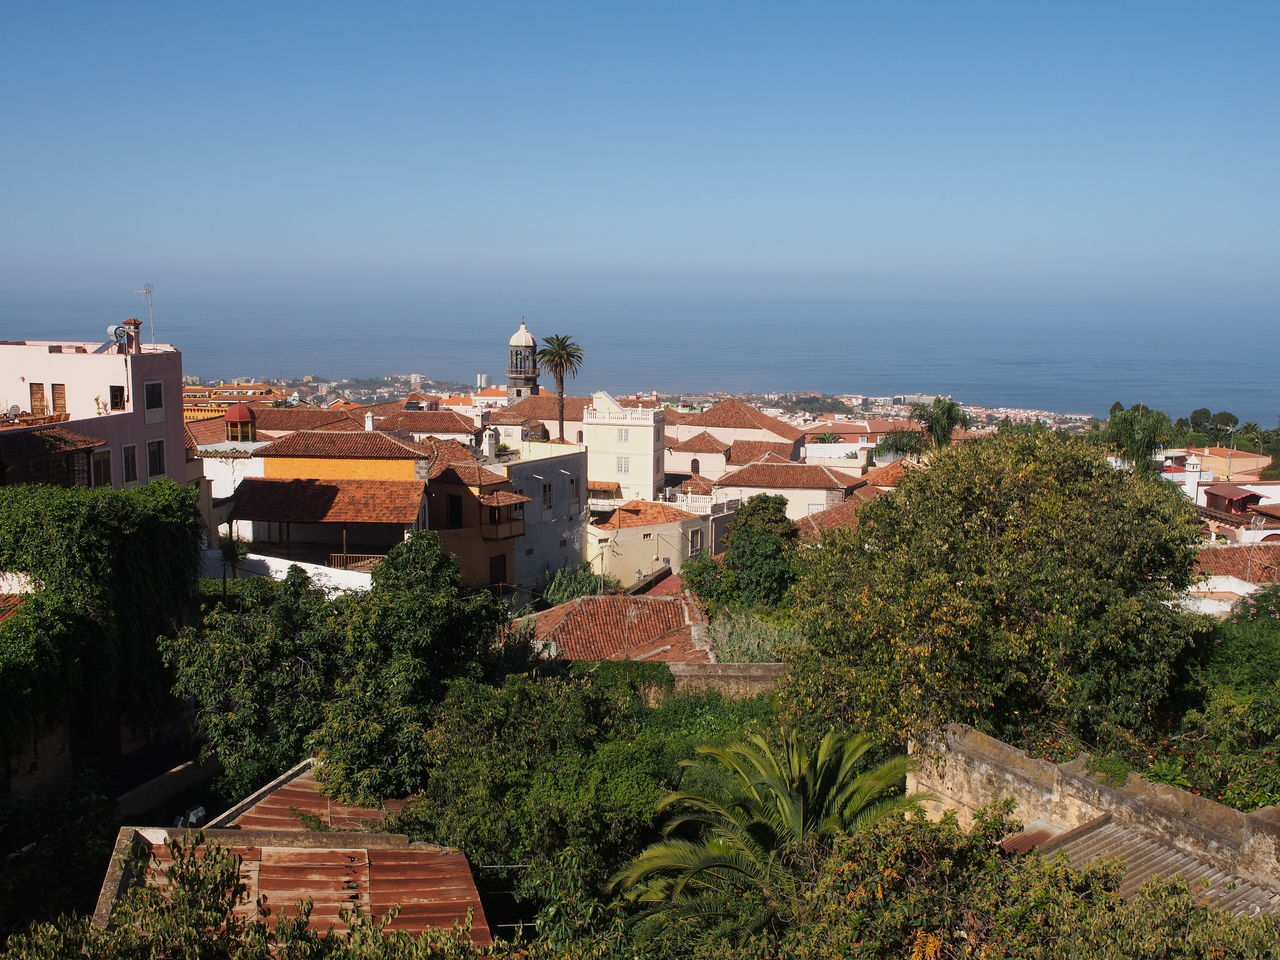 Architecture Atlantic Ocean Canary Islands Clear Sky La Orotava No People Outdoors Sea SPAIN Tenerife Town View